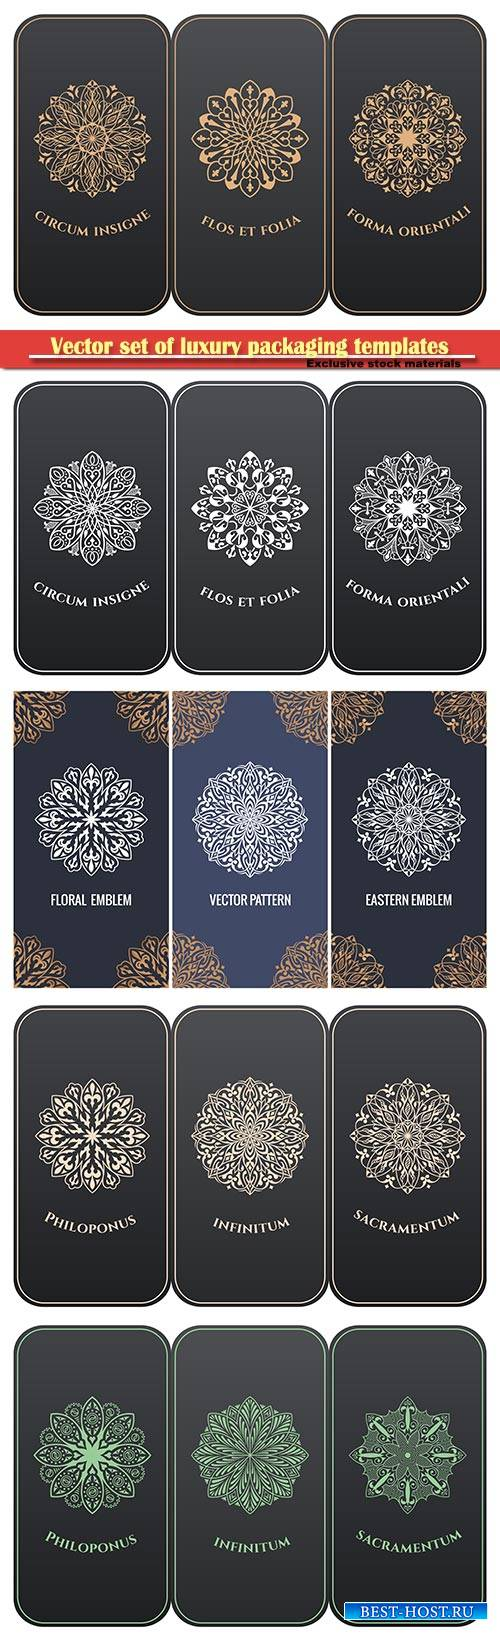 Vector set of luxury packaging templates in modern floral style